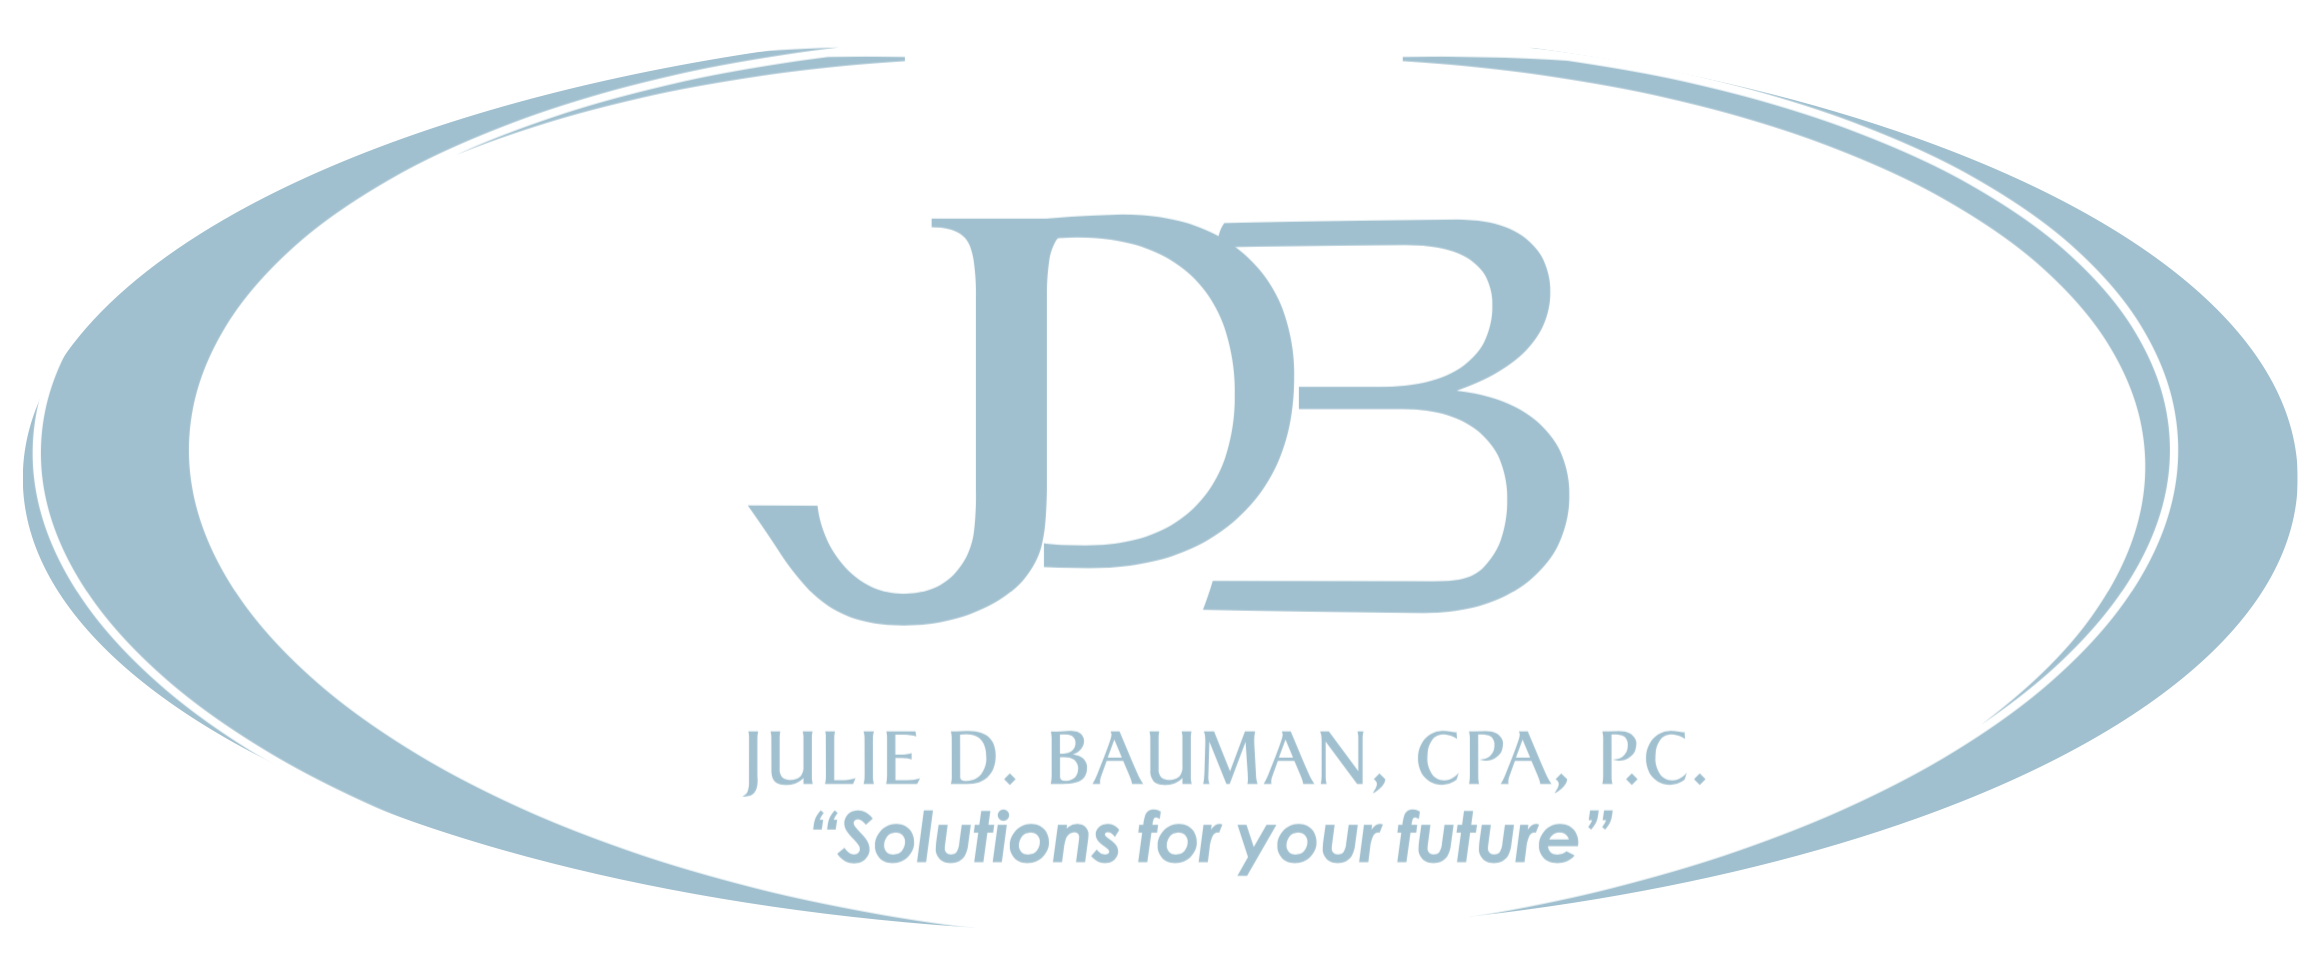 Virtual Accounting Firm | Accounting Internship Page | Julie D. Bauman, CPA, PC